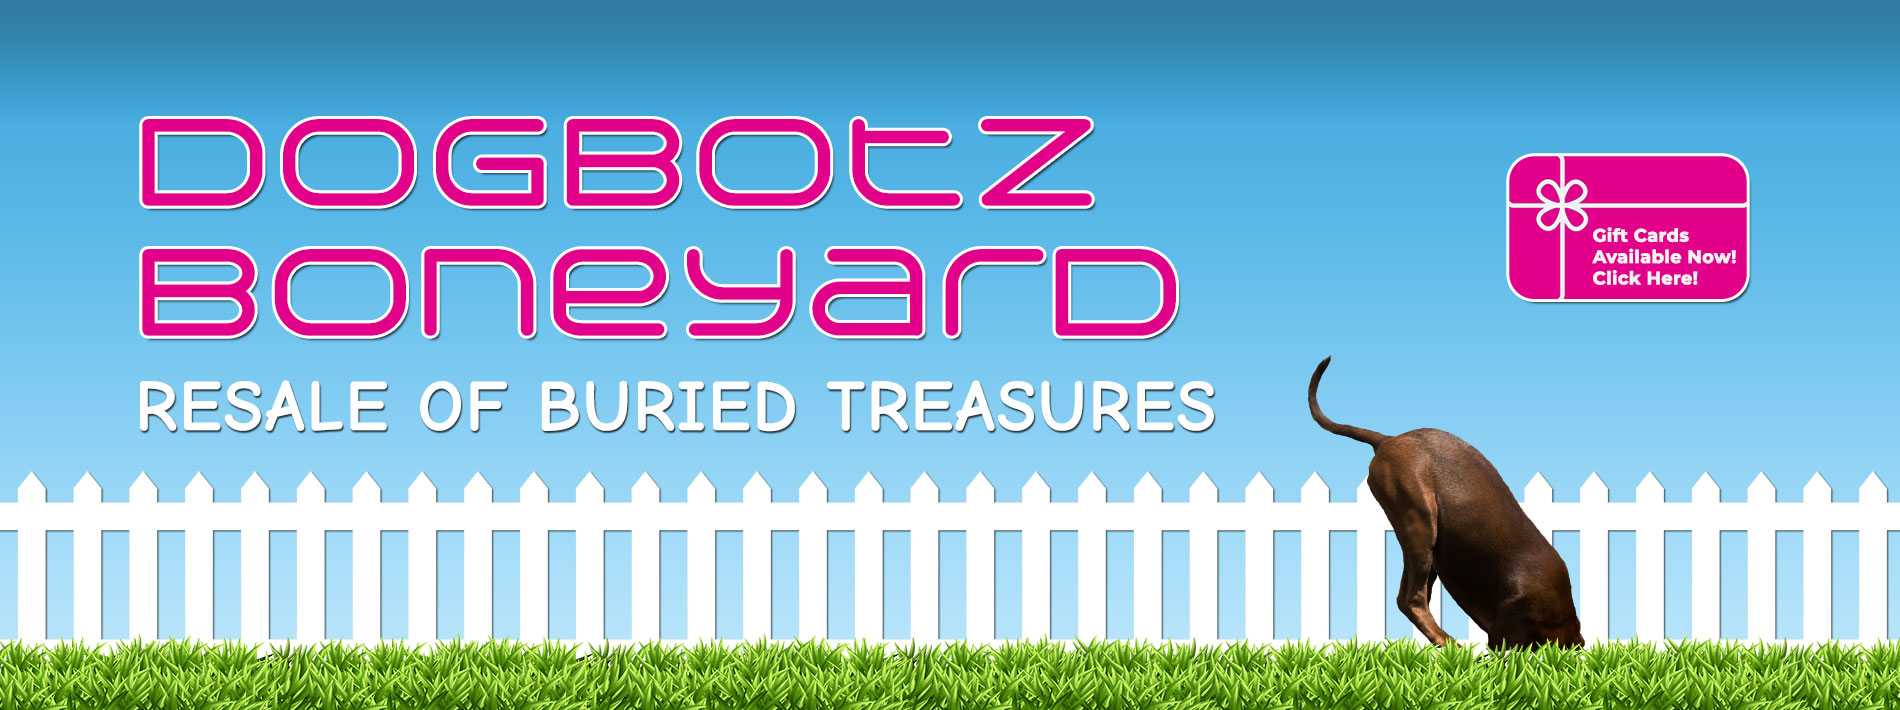 Dogbotz Boneyard - Gift Cards Available Now! Click Here!